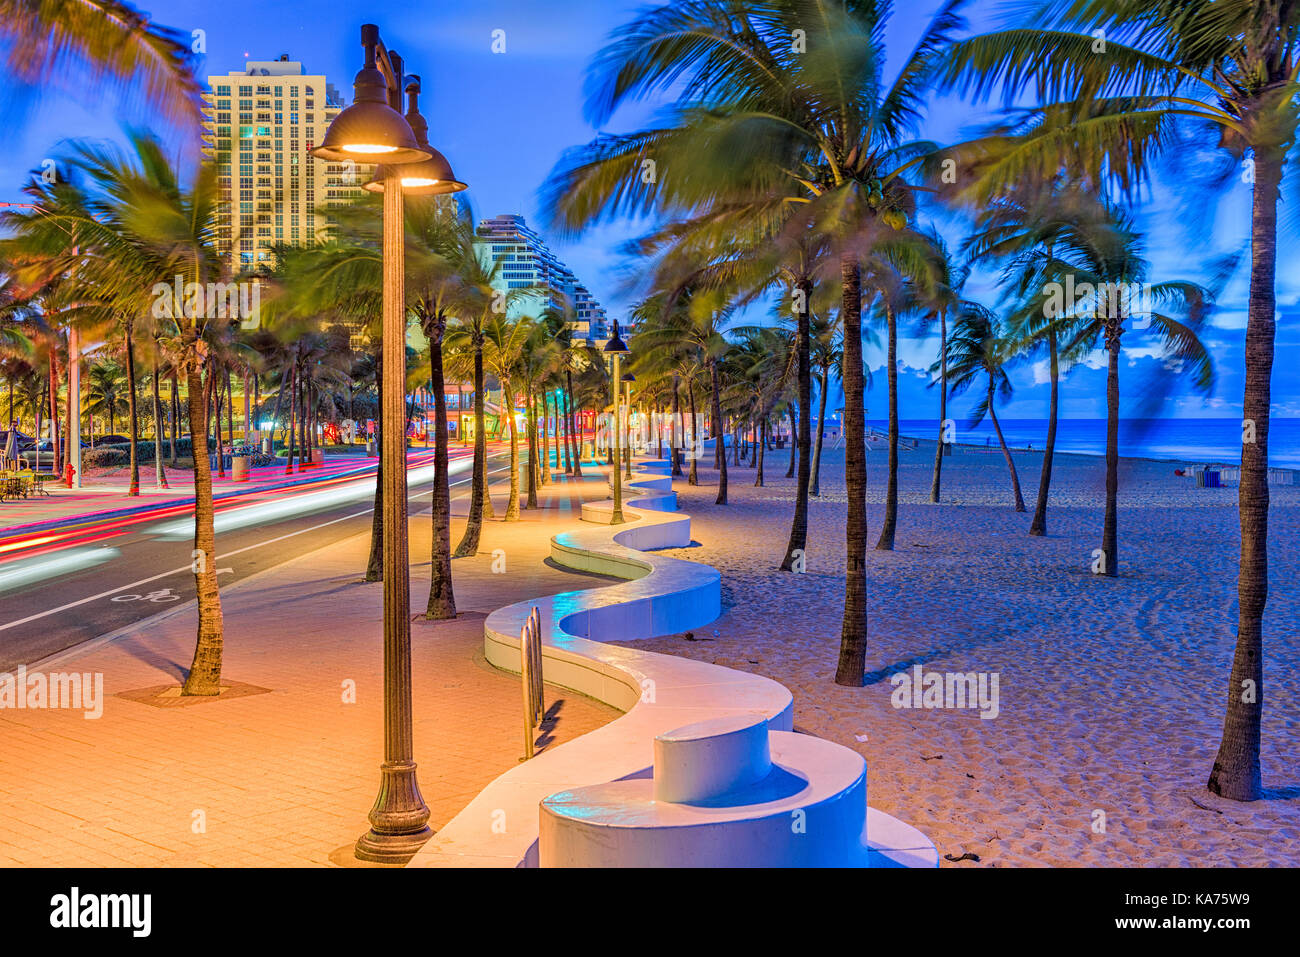 Ft. Lauderdale, Florida, USA on the beach strip. - Stock Image